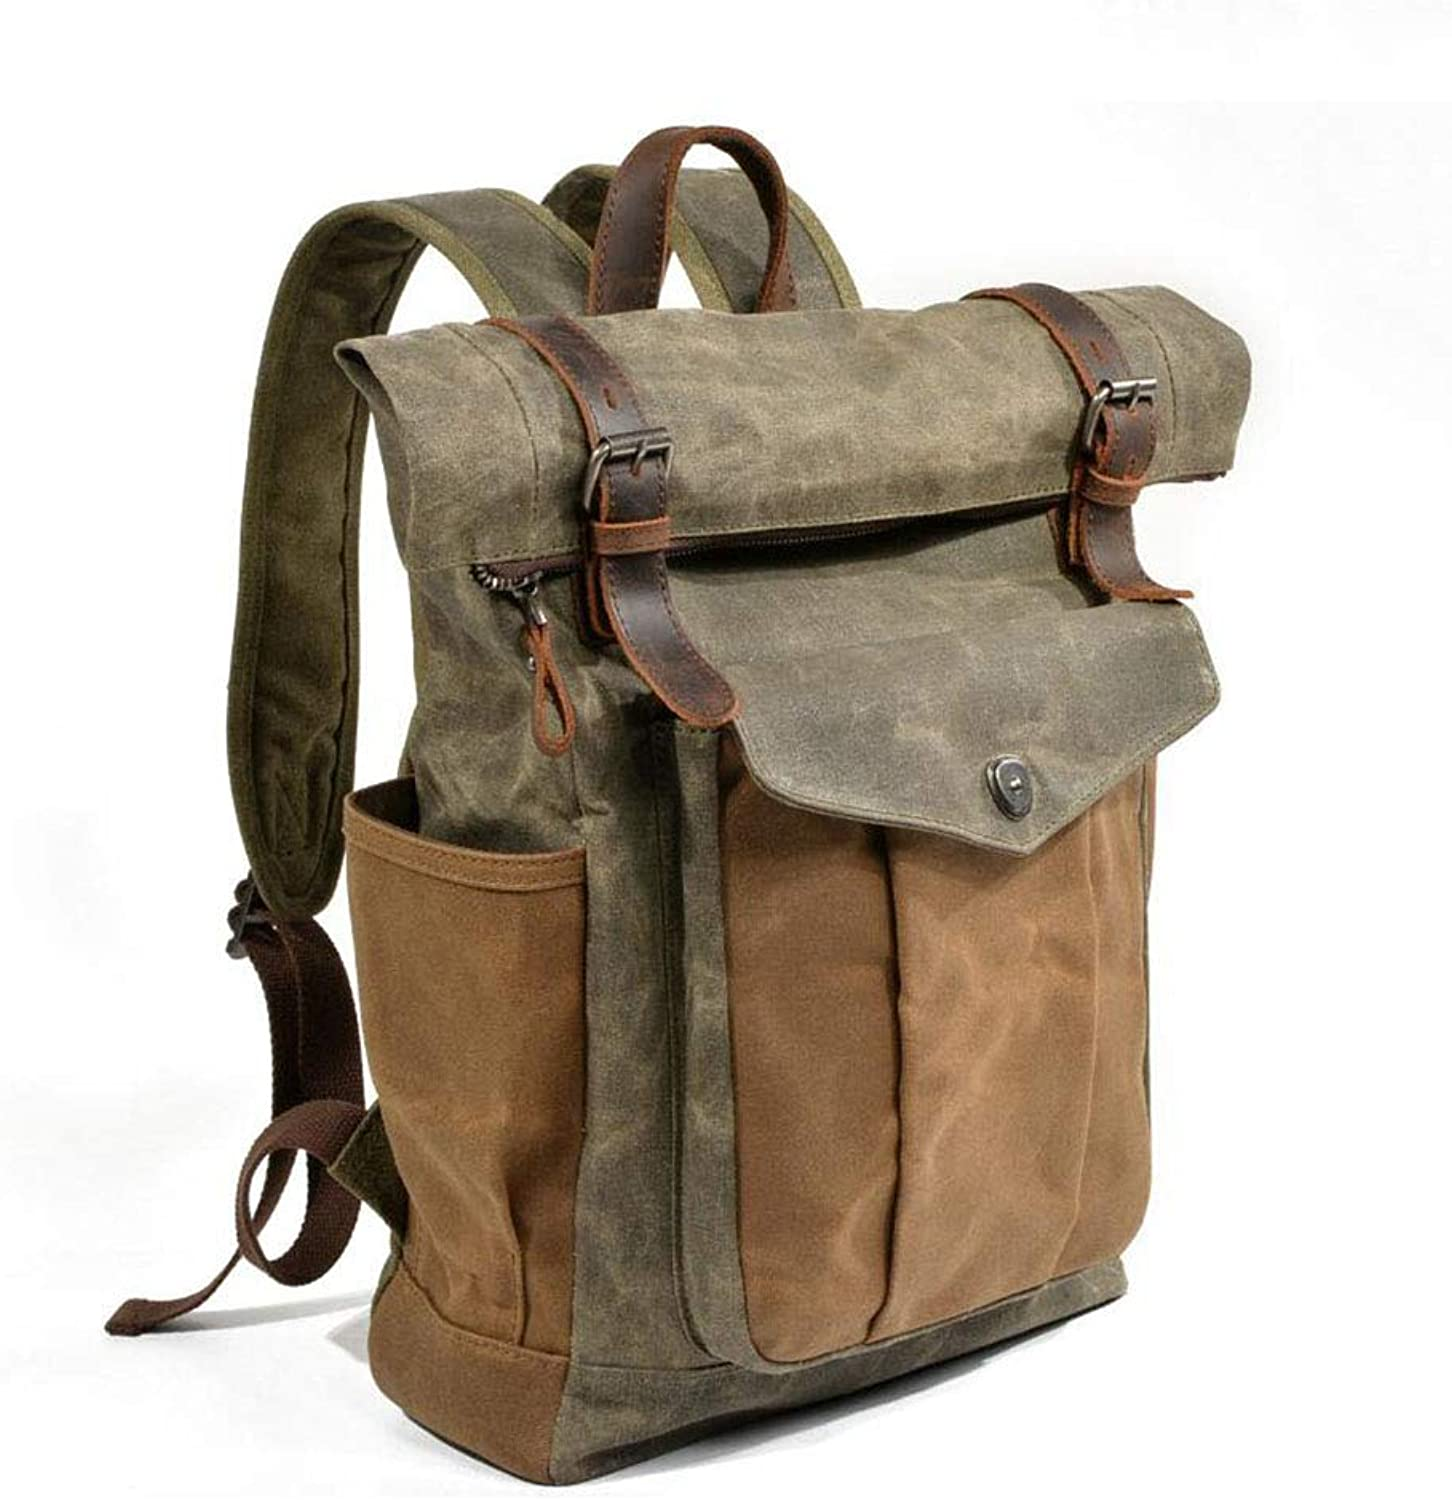 Casual Backpack, Outdoor Travel Bag Canvas Large Capacity Rucksack Waterproof Wear-Resistant Retro Daypack for Travel Sports Camping,A